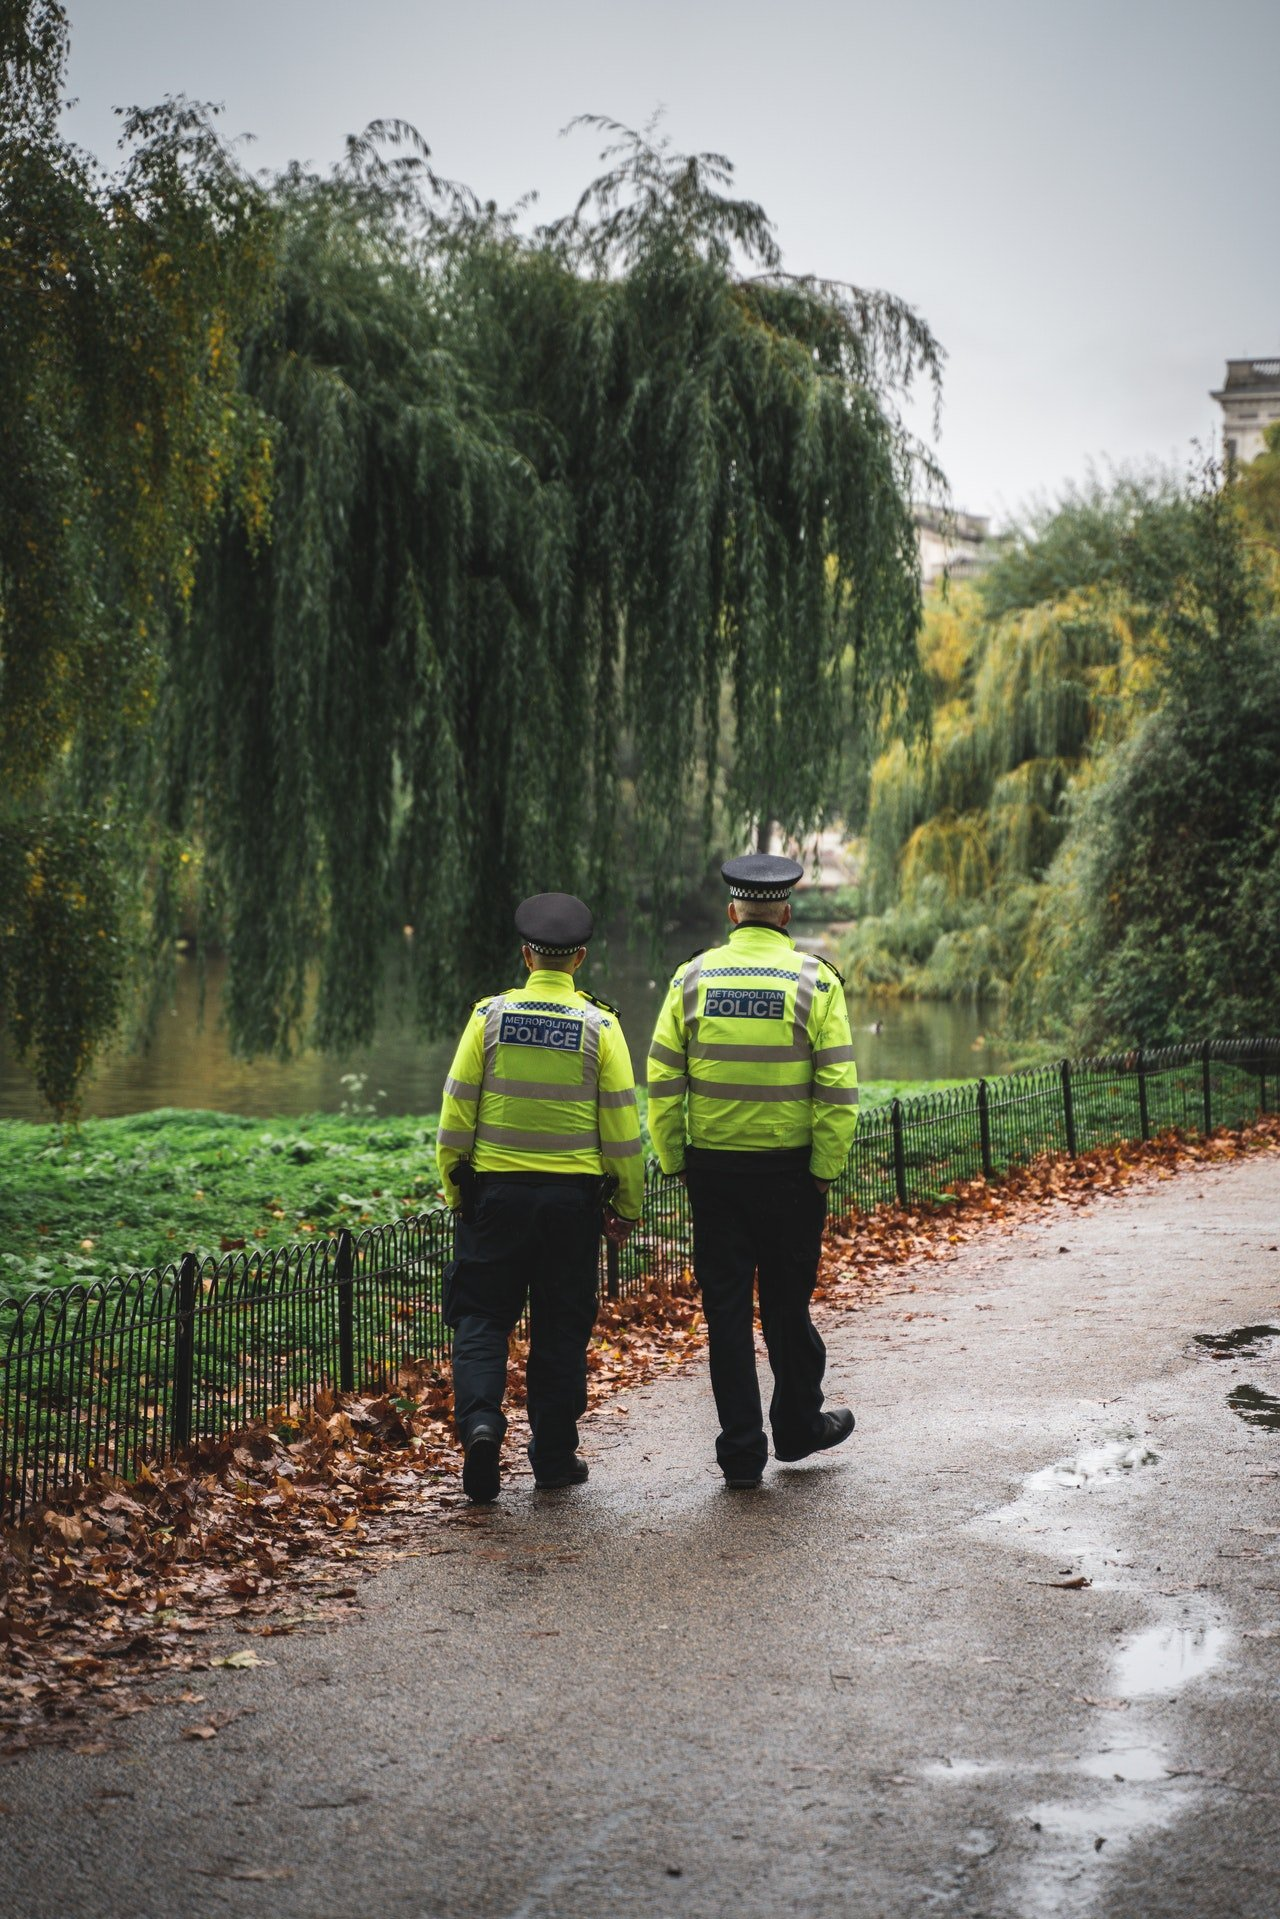 Photo of two police officers walking on the road | Photo: Pexels